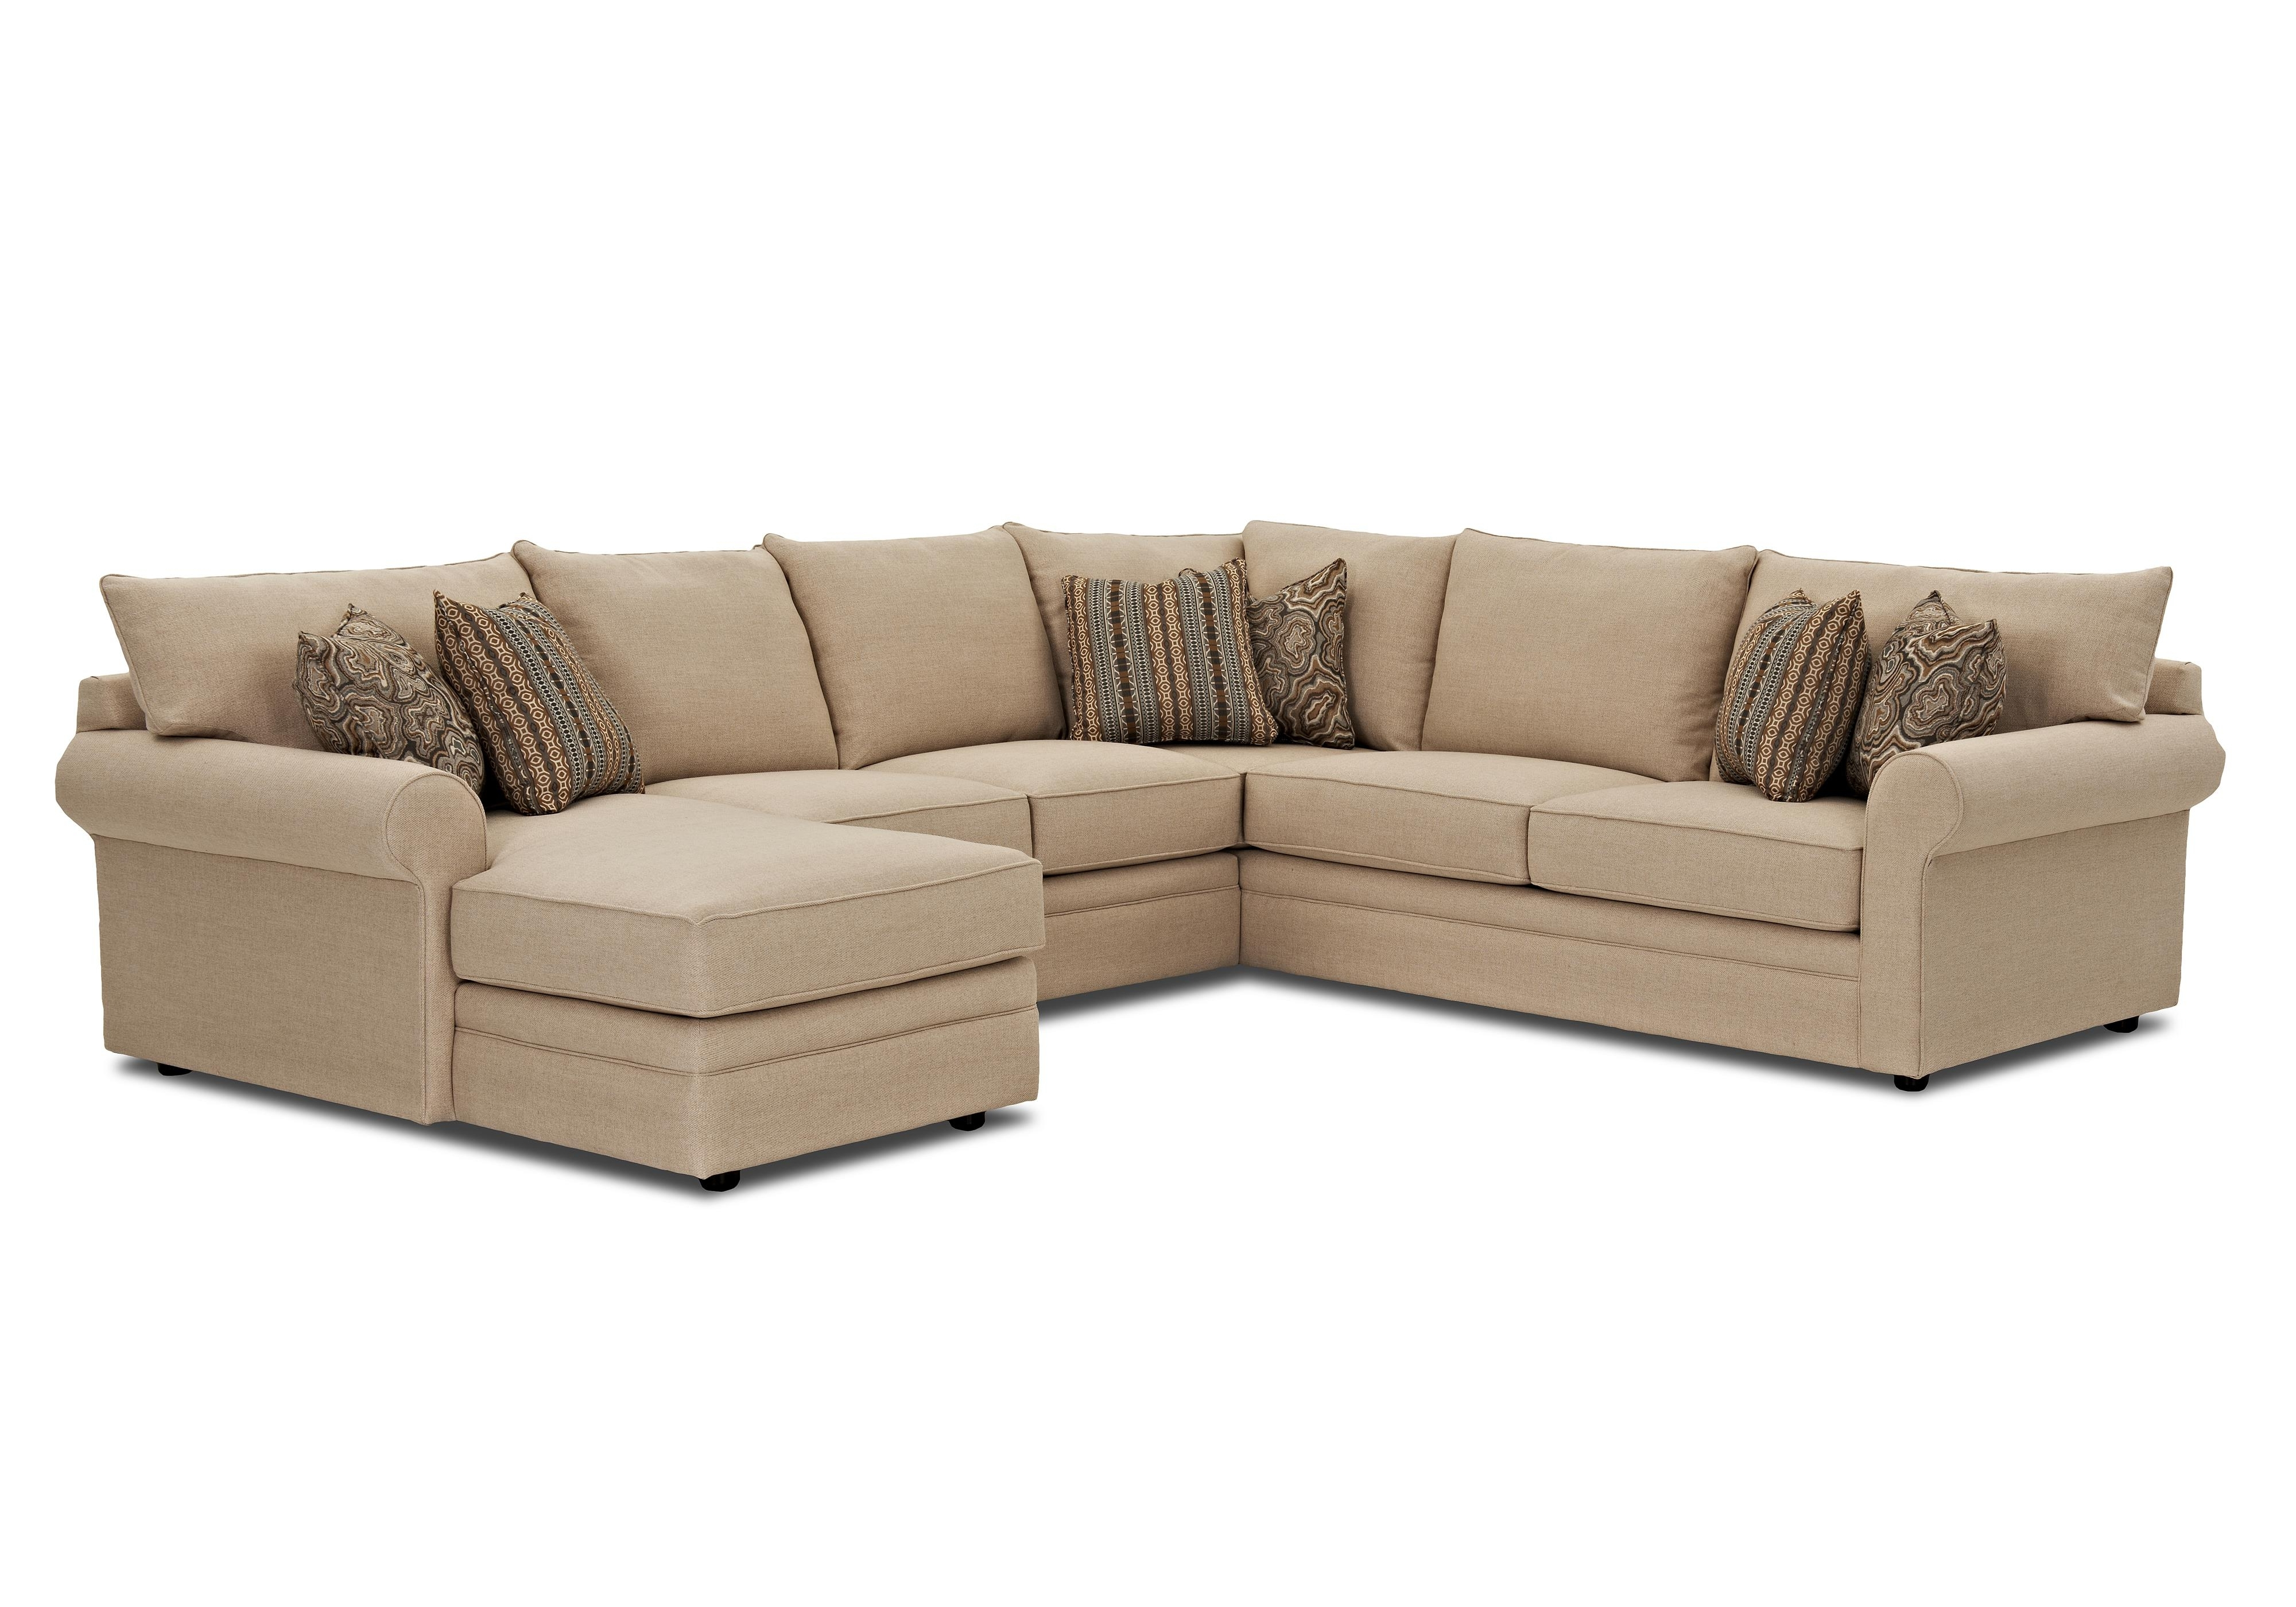 Comfy Sectional Sofas Regarding Famous Klaussner Comfy Casual Sectional Sofa With Raf Chaise (View 9 of 15)